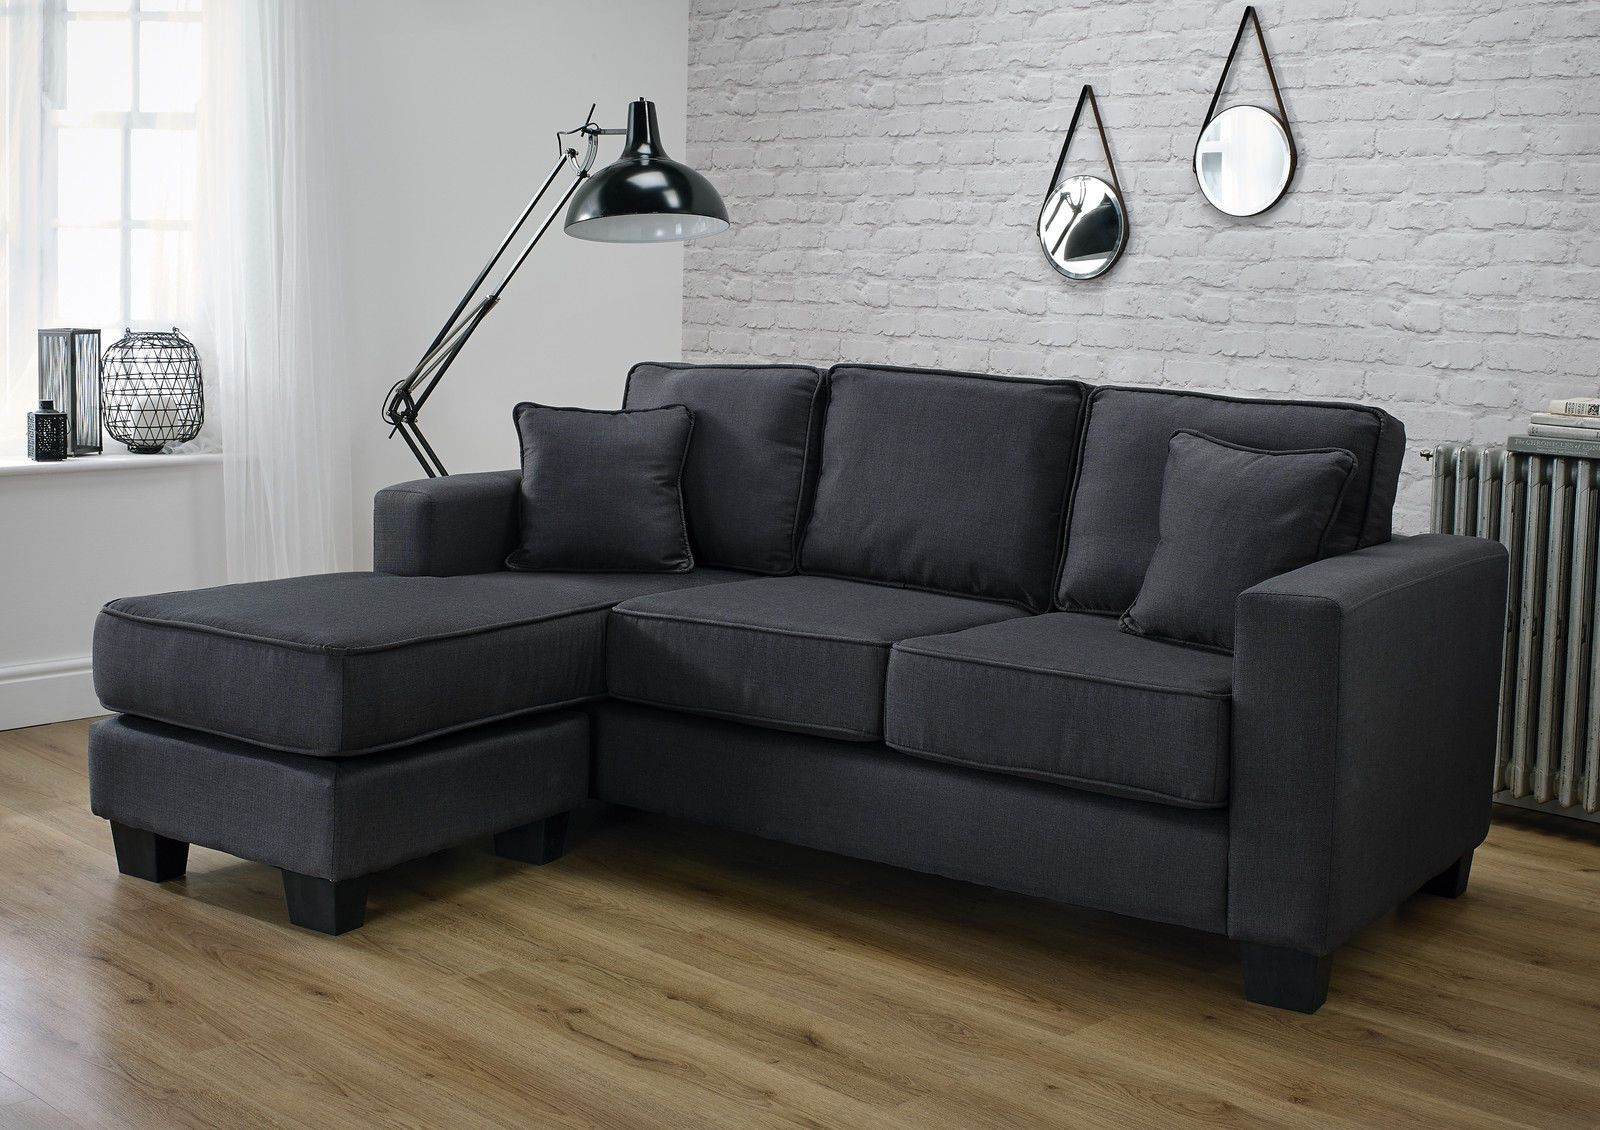 Soho Modern Corner L Shape Fabric Sofa In Slate Grey Fabric Sofa Sofa Corner Sofa